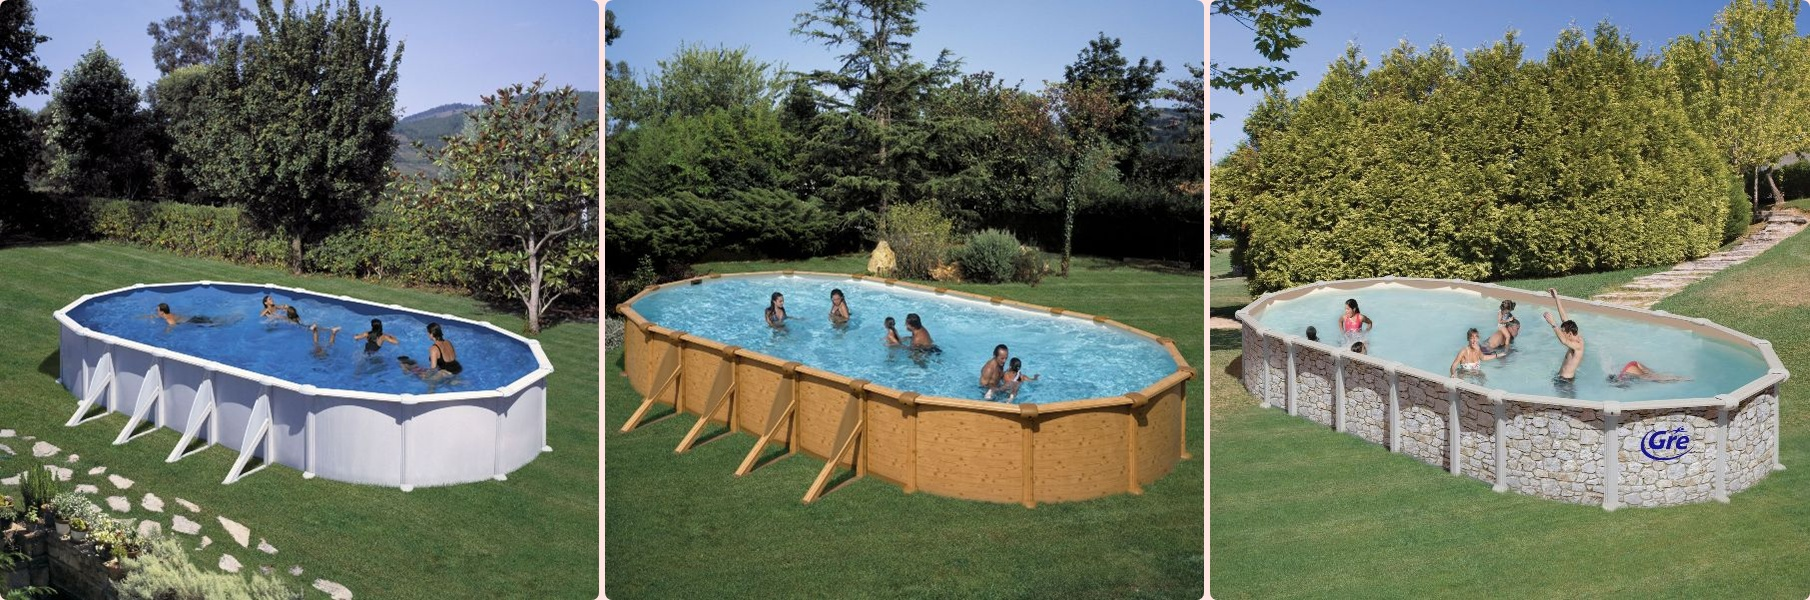 Piscine demontable acheter piscine d montable for Kit piscine enterree